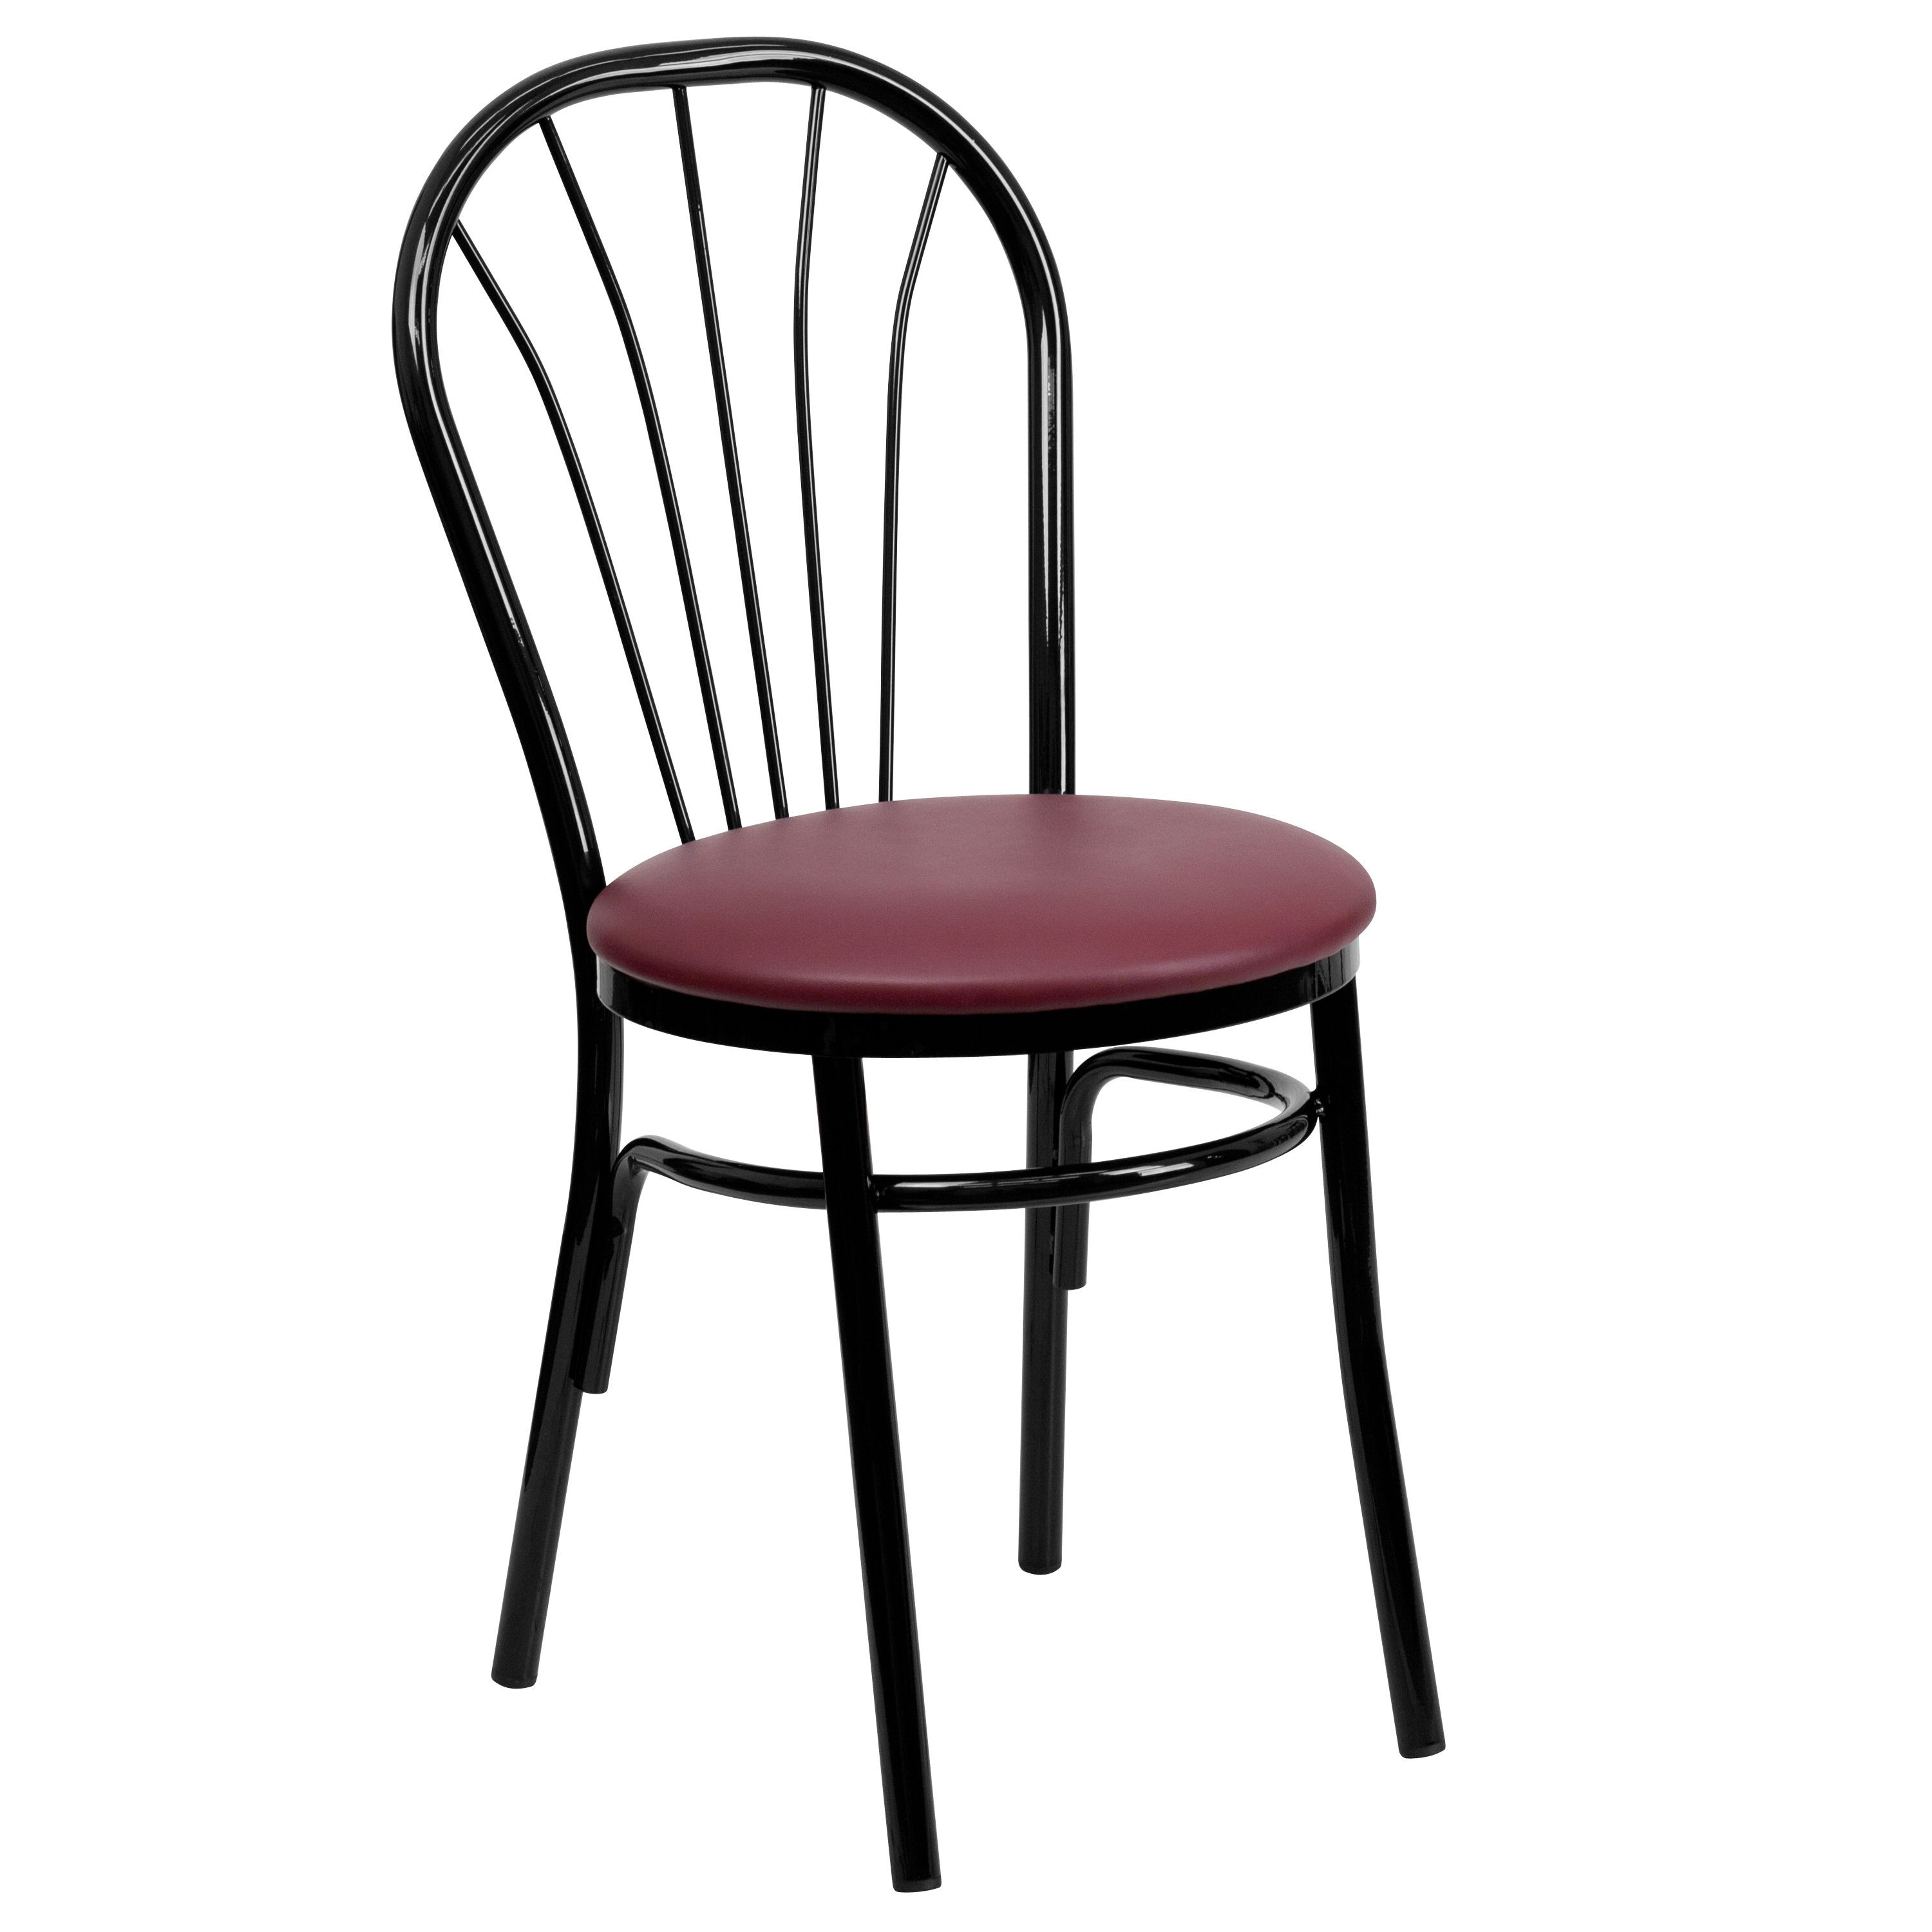 metal restaurant chairs electric chair execution videos new fan back burgundy vinyl seat lot of 10 home furniture seating